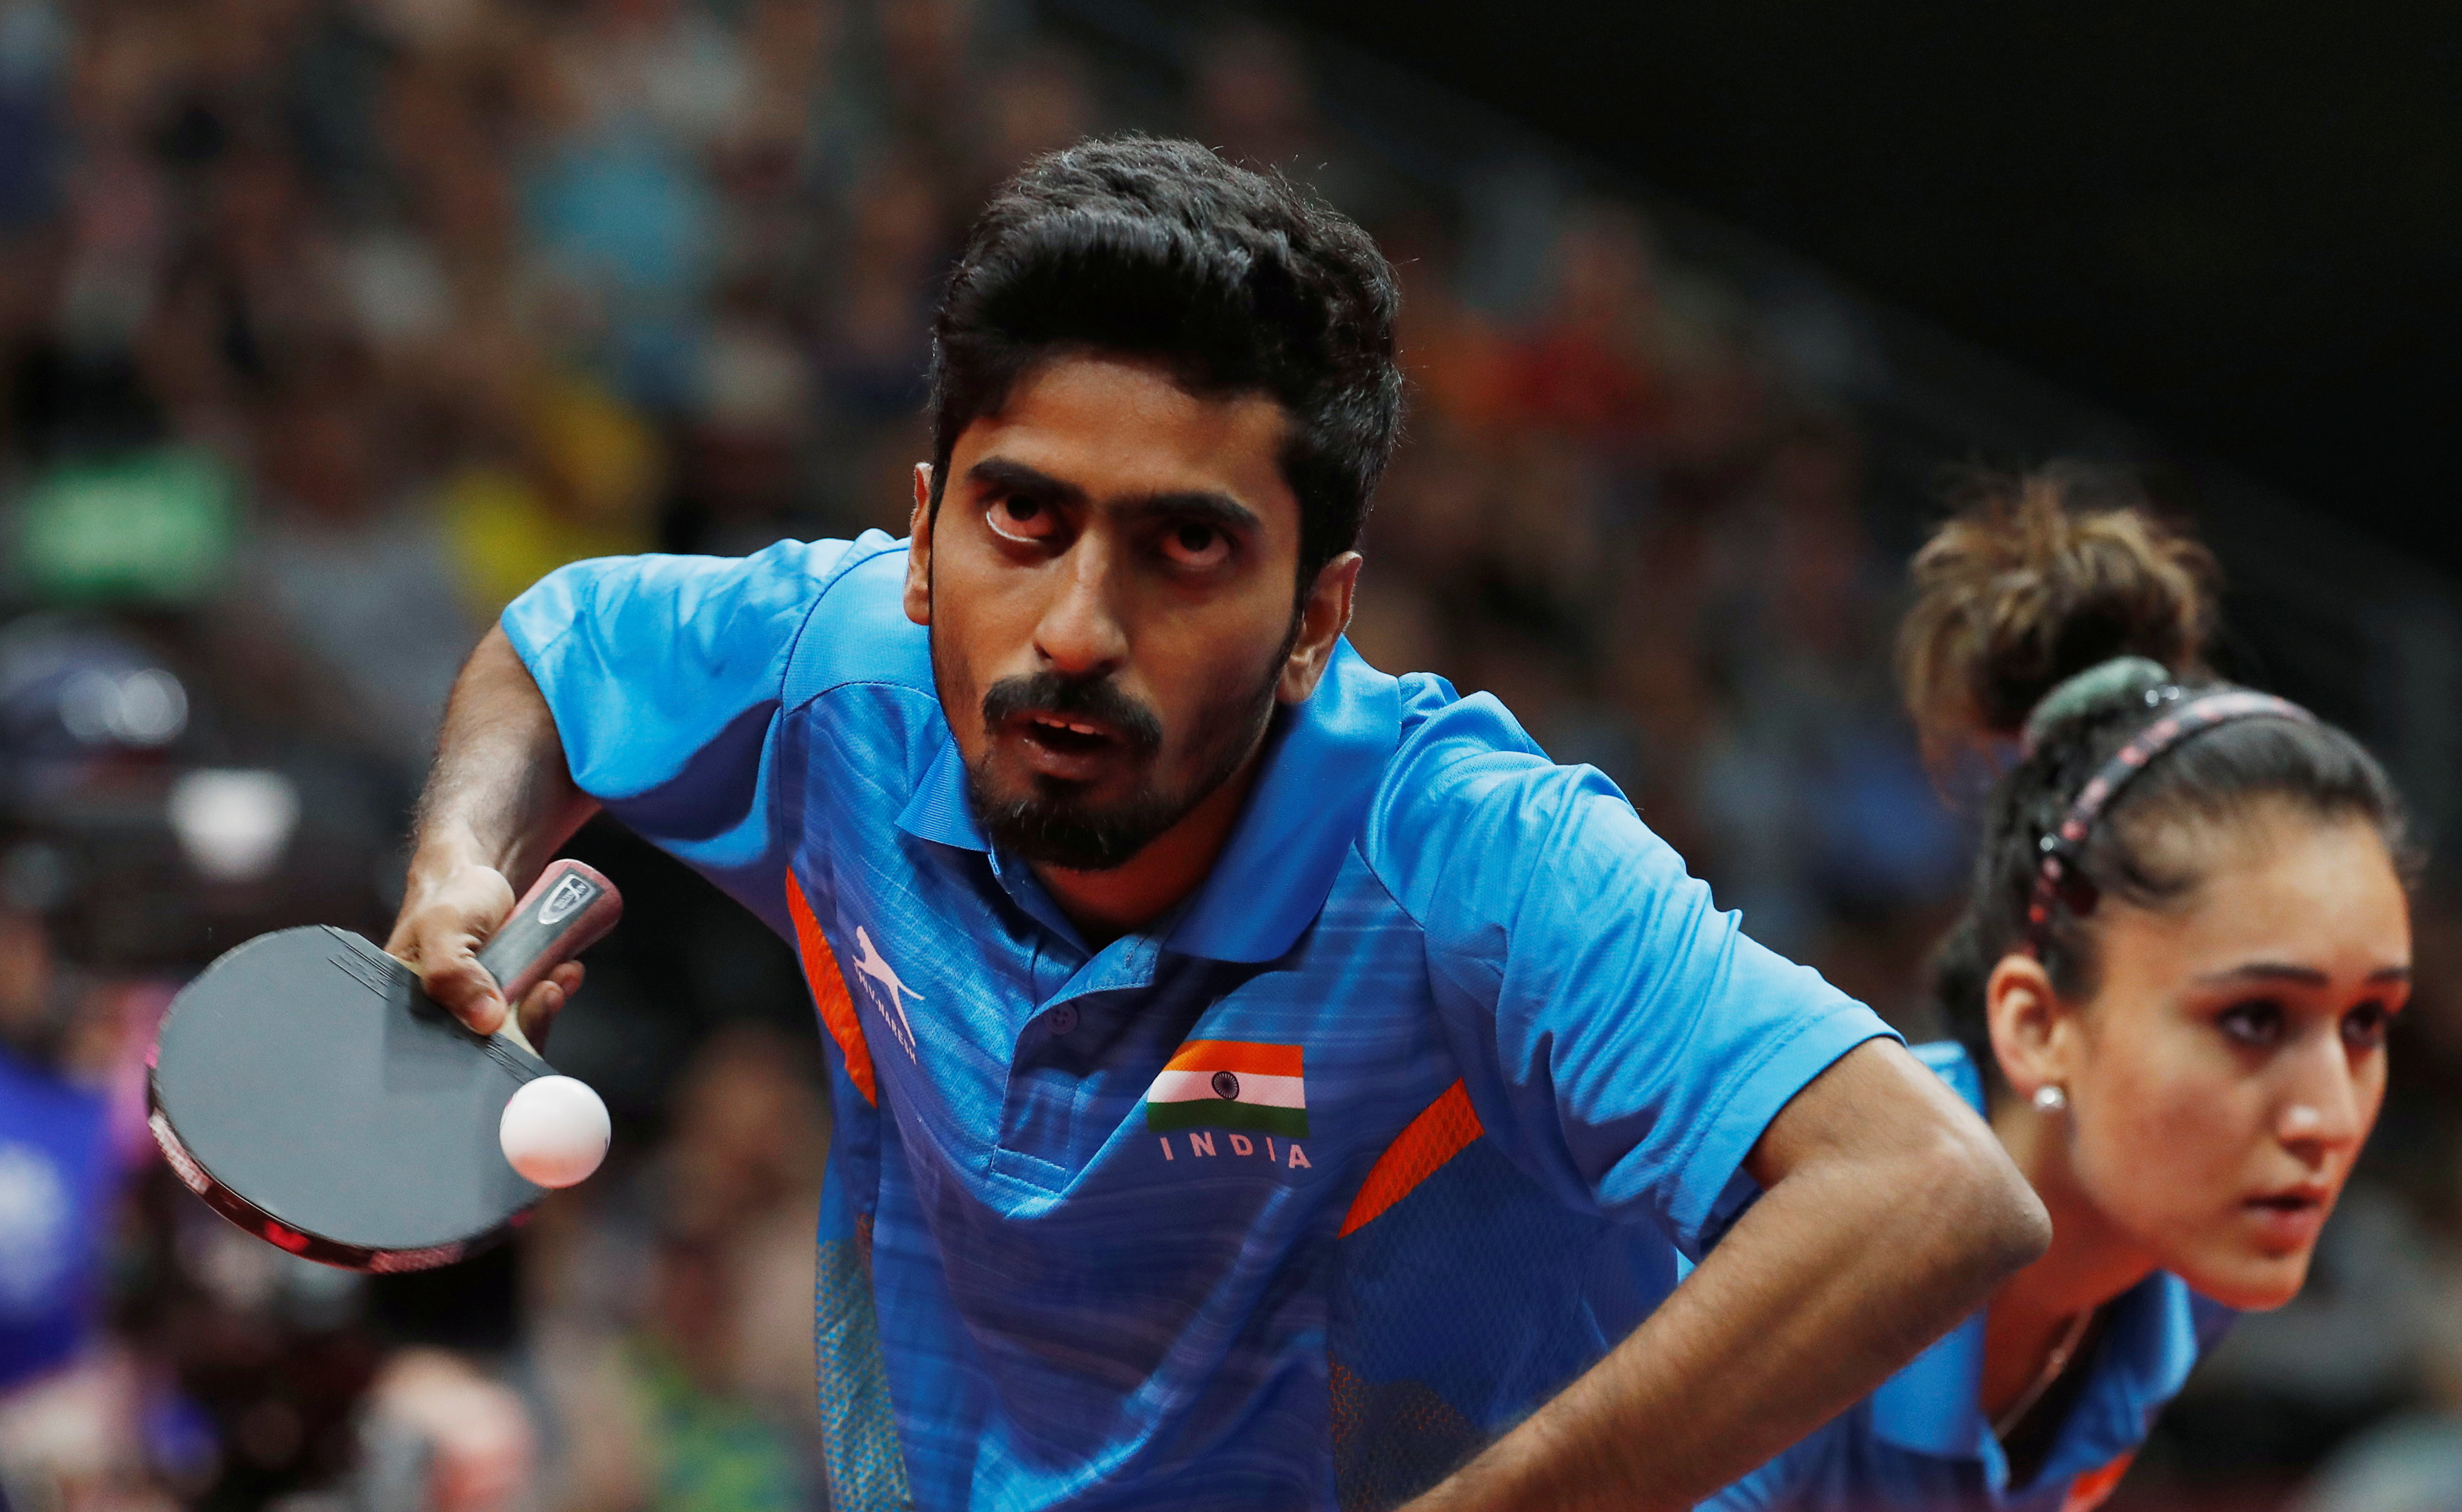 Table Tennis - Gold Coast 2018 Commonwealth Games -  Mixed Doubles Semifinal 2 - England v India - Oxenford Studios - Gold Coast, Australia - April 14, 2018. Sathiyan Gnanasekaran of India in action. REUTERS/Jeremy Lee/File Photo